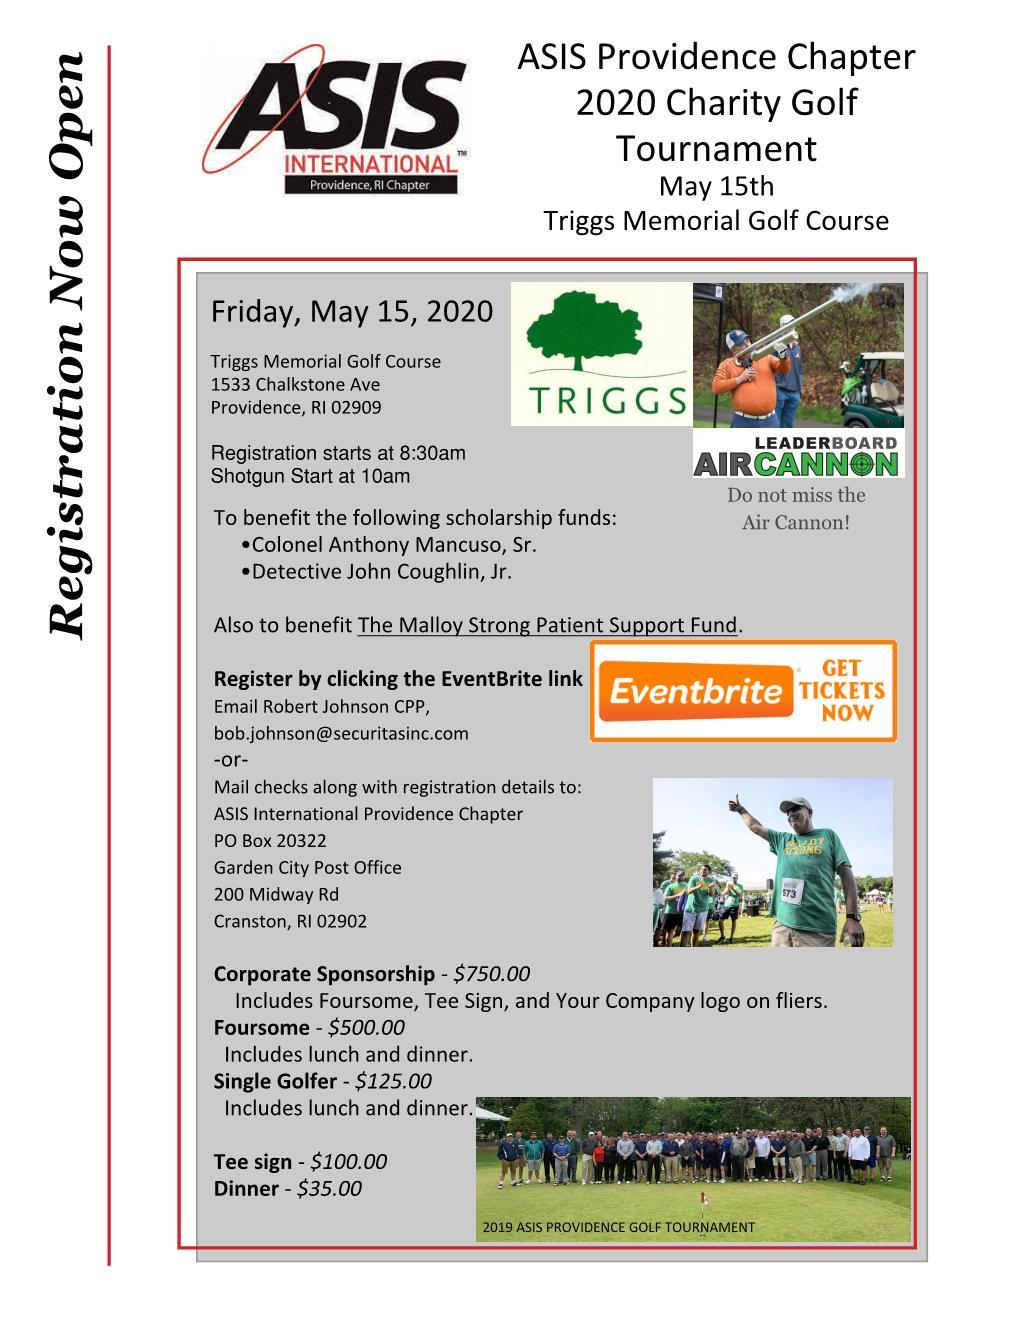 ASIS Annual Charity Golf Outing